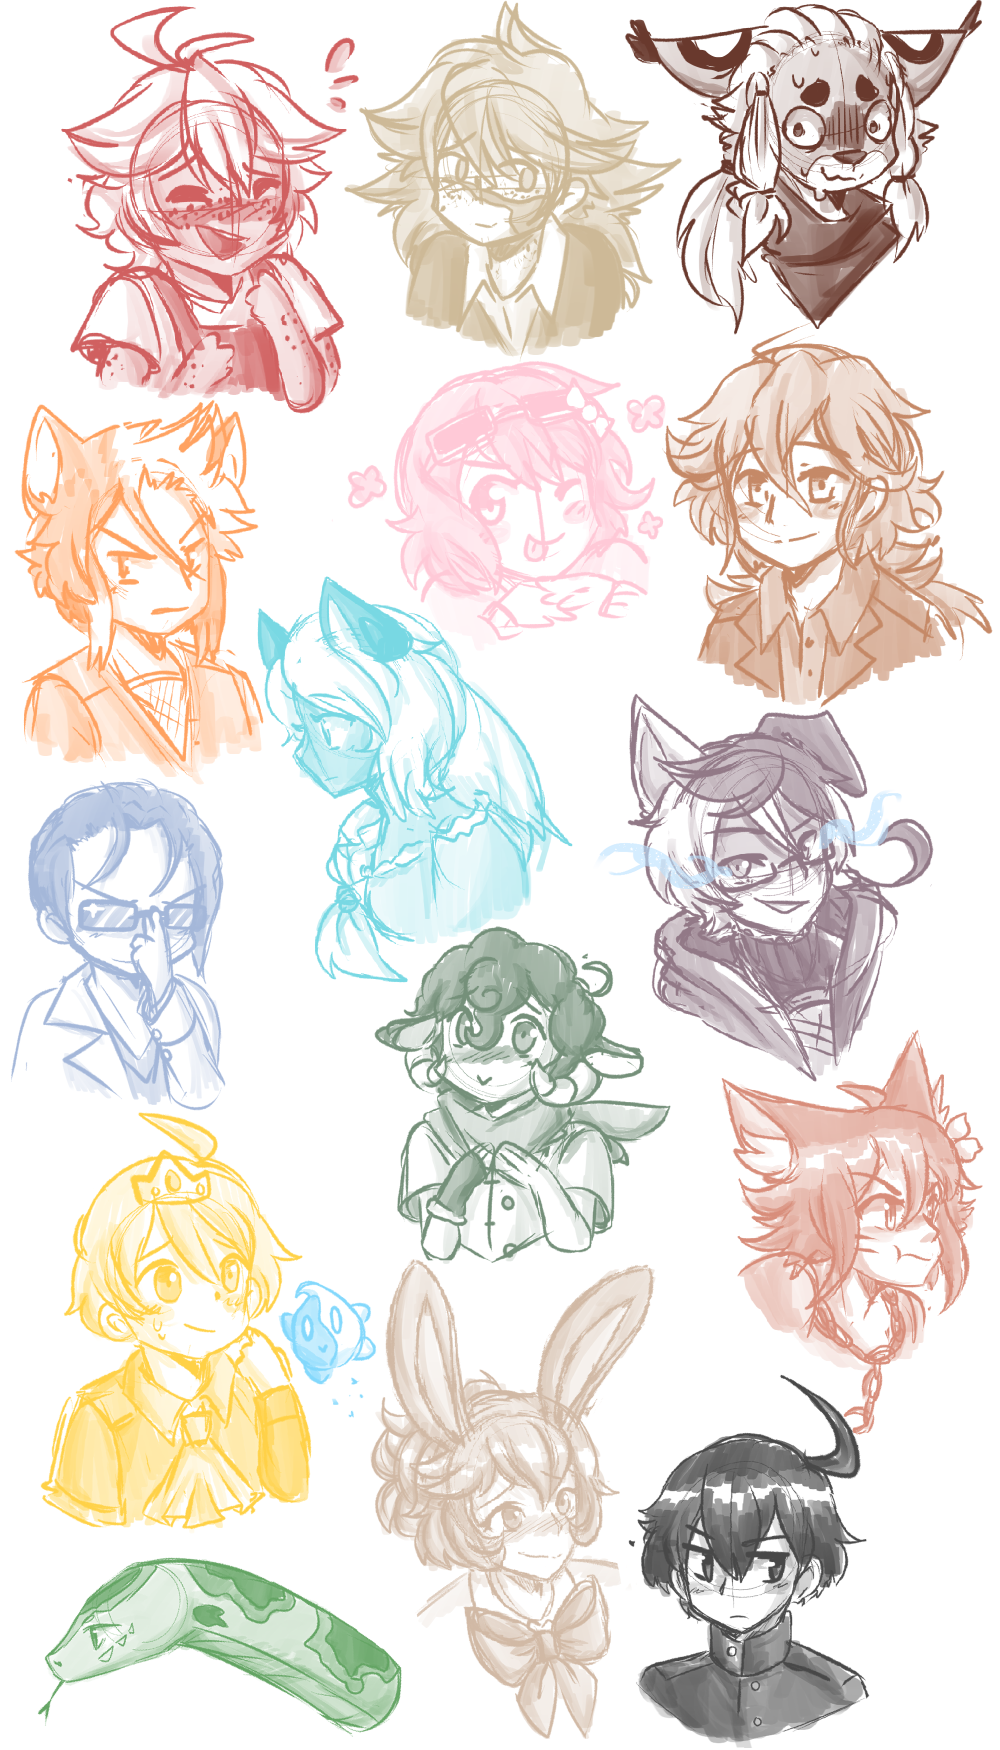 look at all these headshots